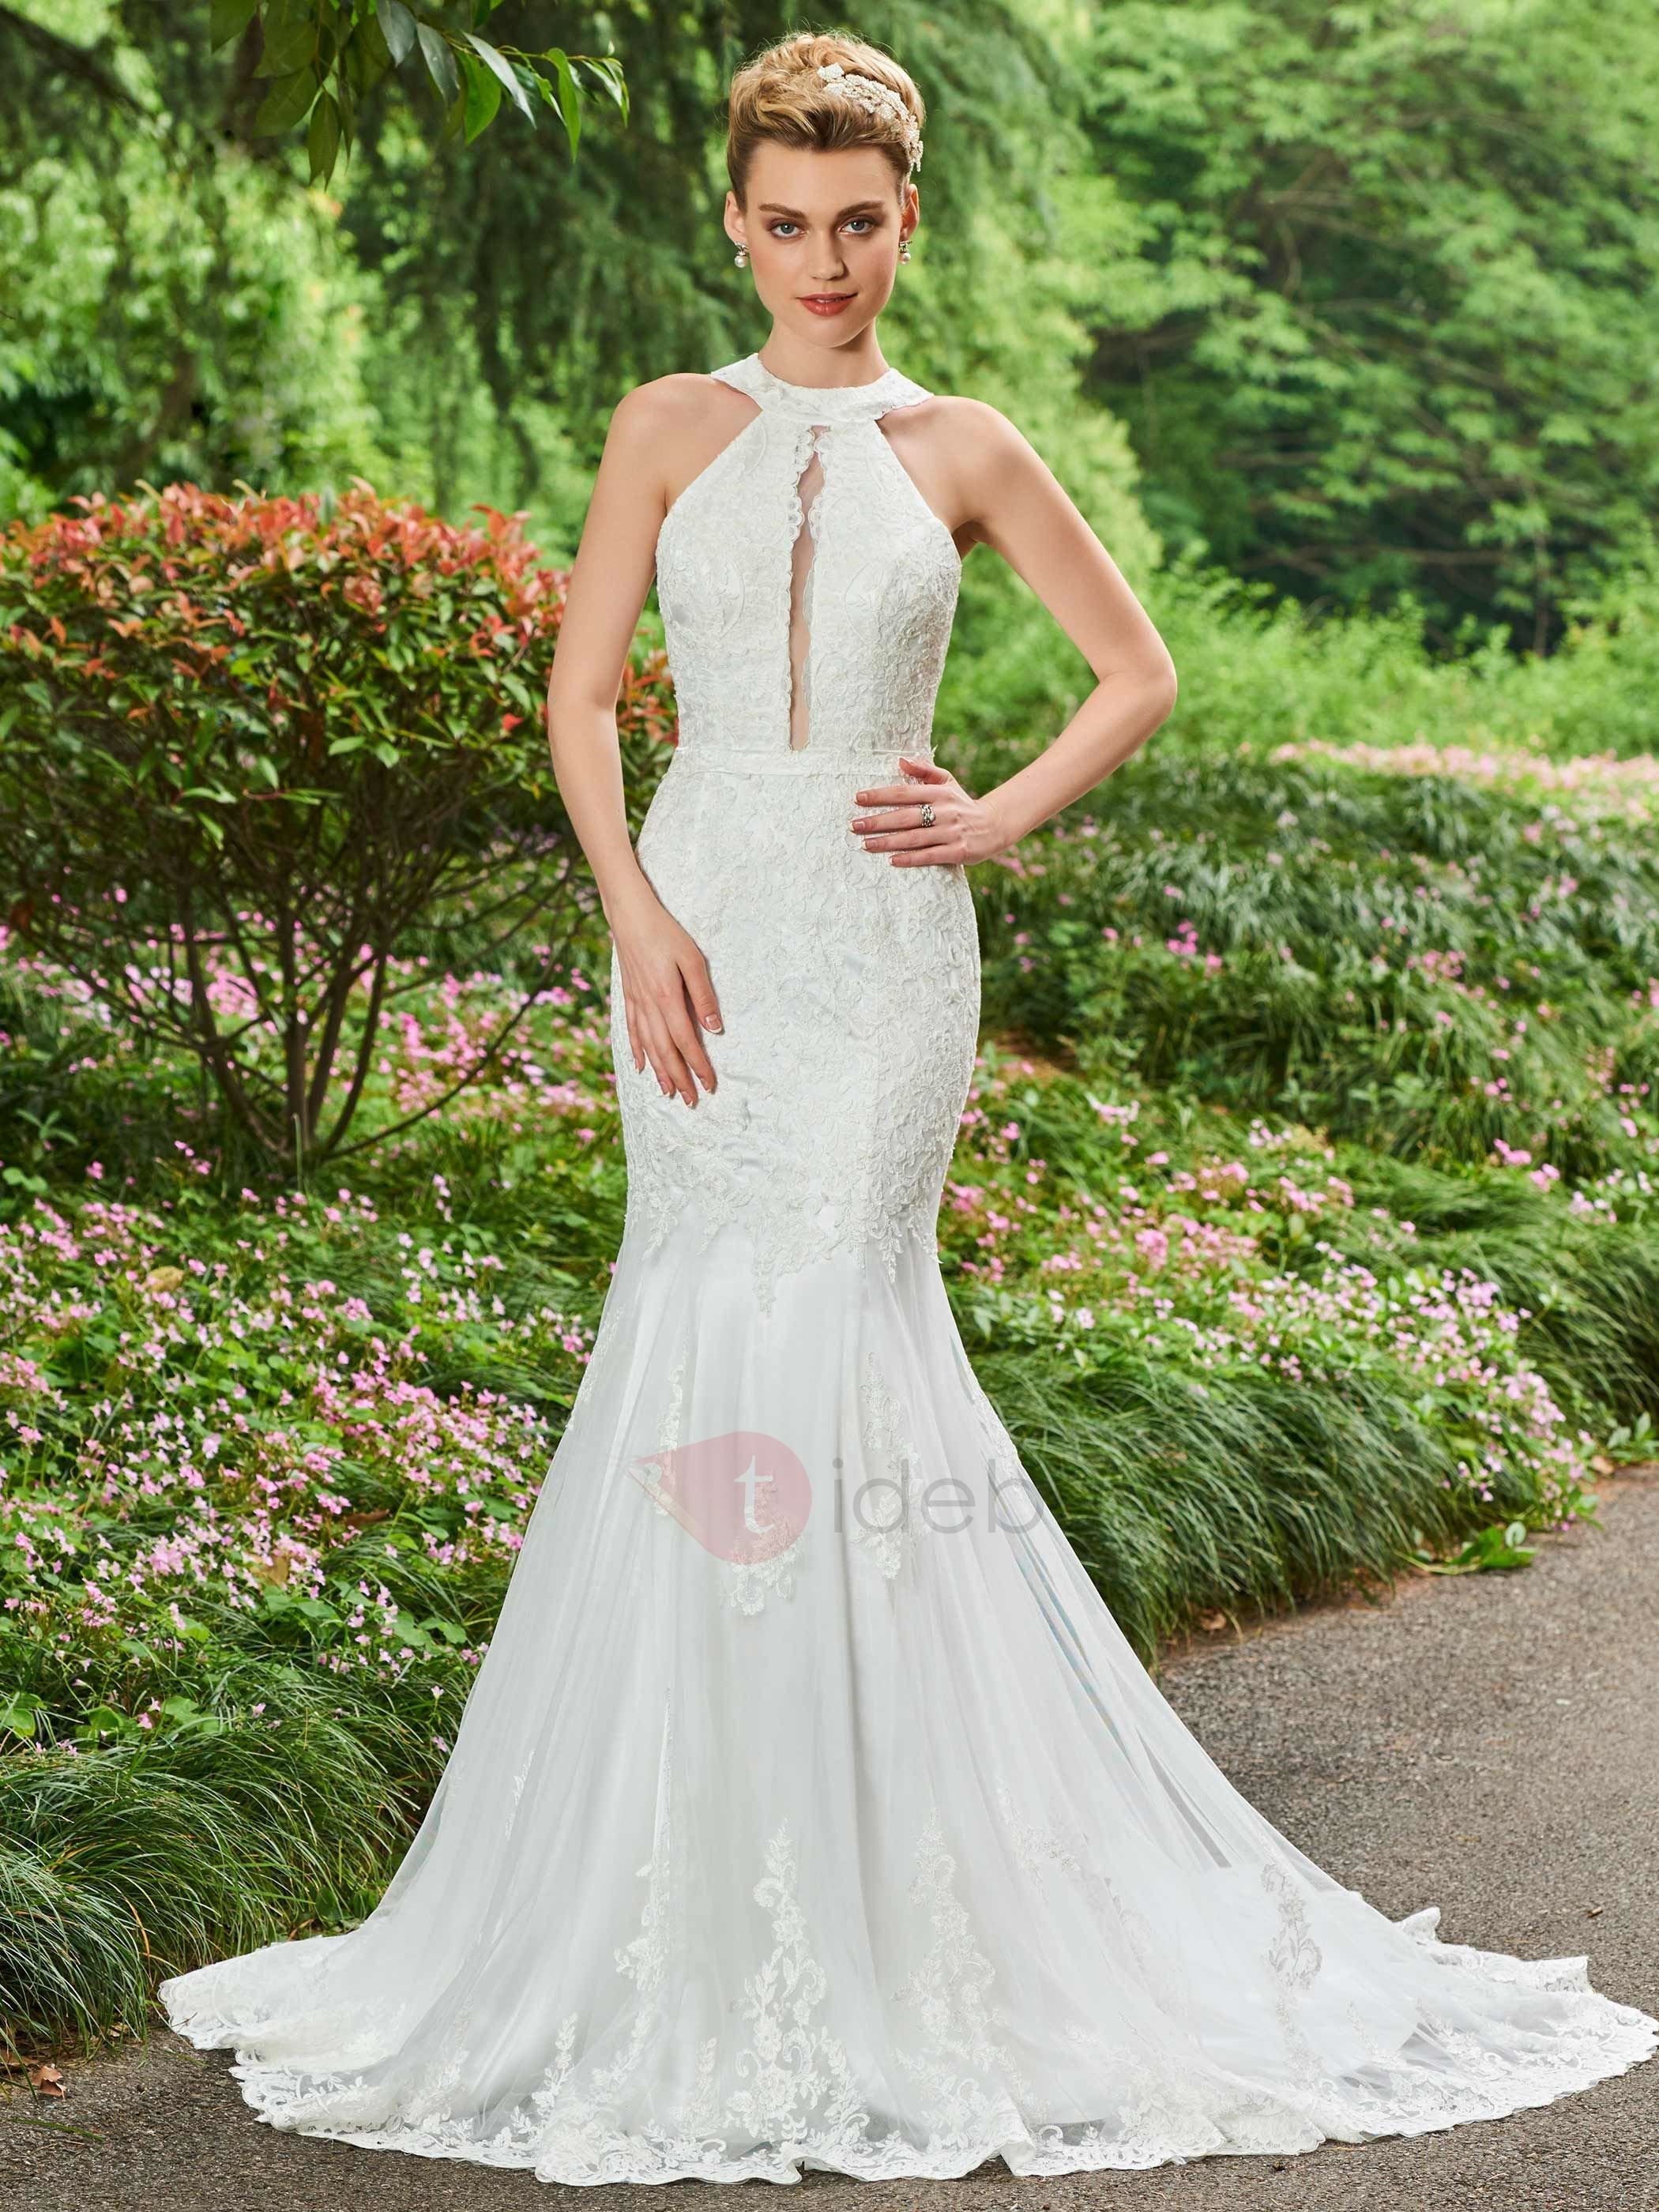 Tidebuy Com Offers High Quality Halter Appliques Lace Mermaid